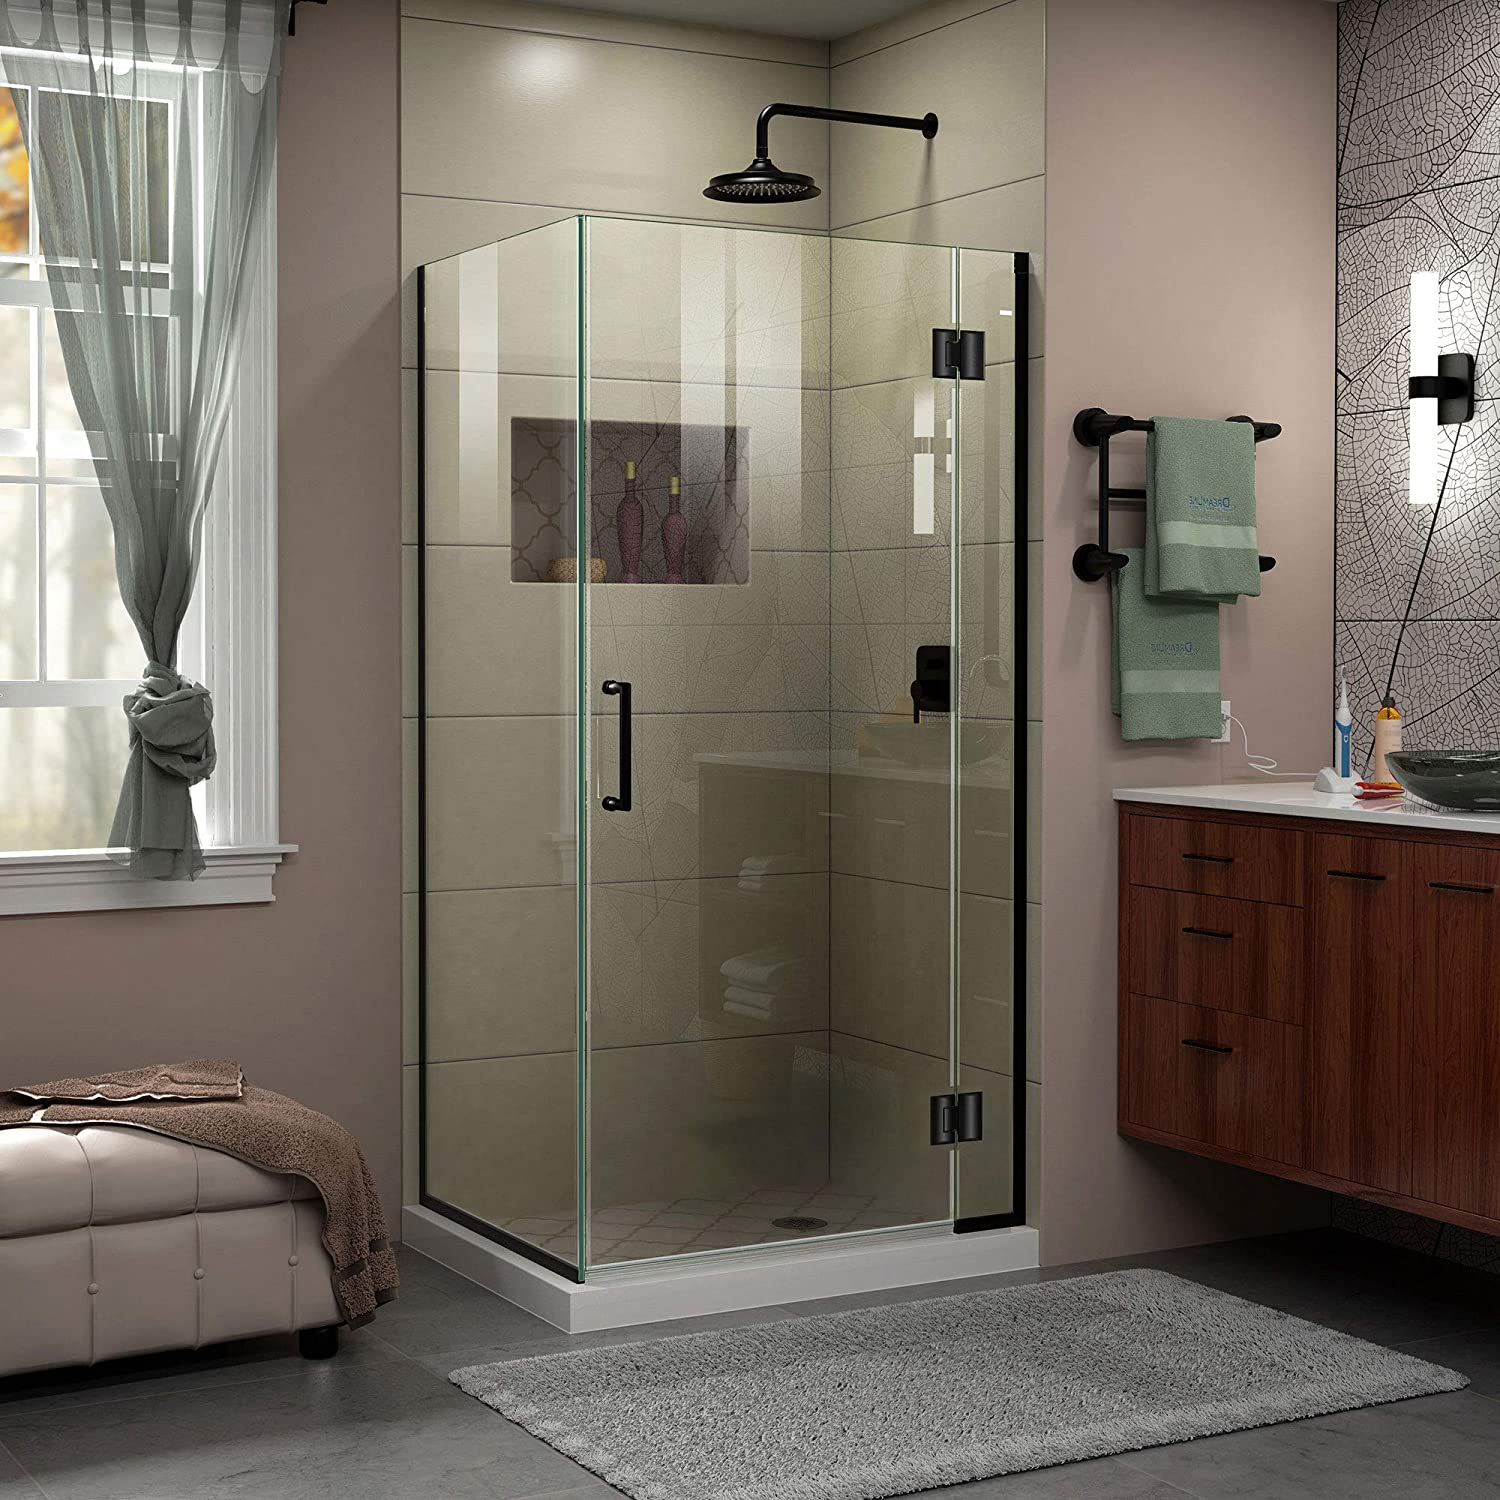 Dreamline Unidoor X 30 3 8 In W X 30 In D X 72 In H Frameless Hinged Shower Enclosure In Satin Black E12430 09 Amazon Com